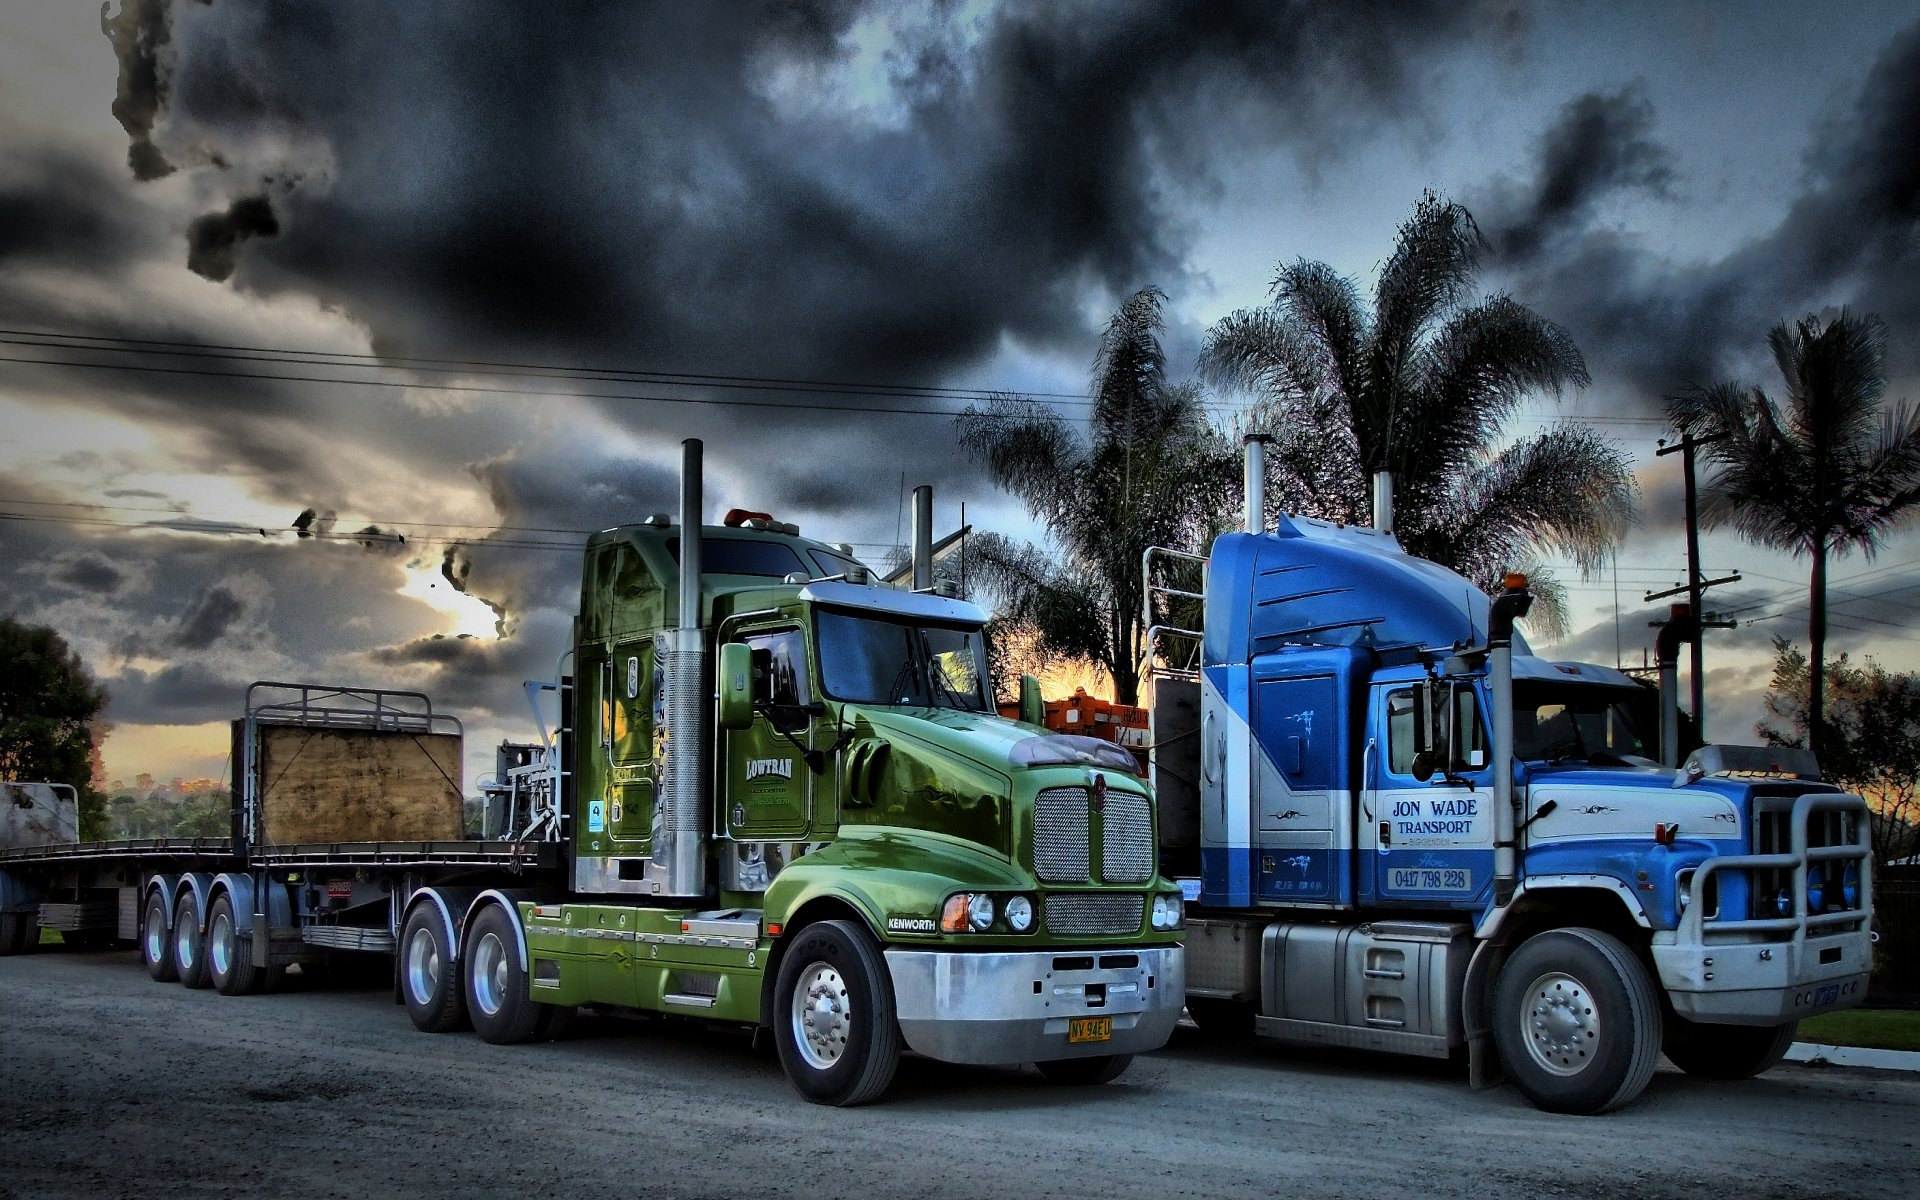 302 truck hd wallpapers | background images - wallpaper abyss